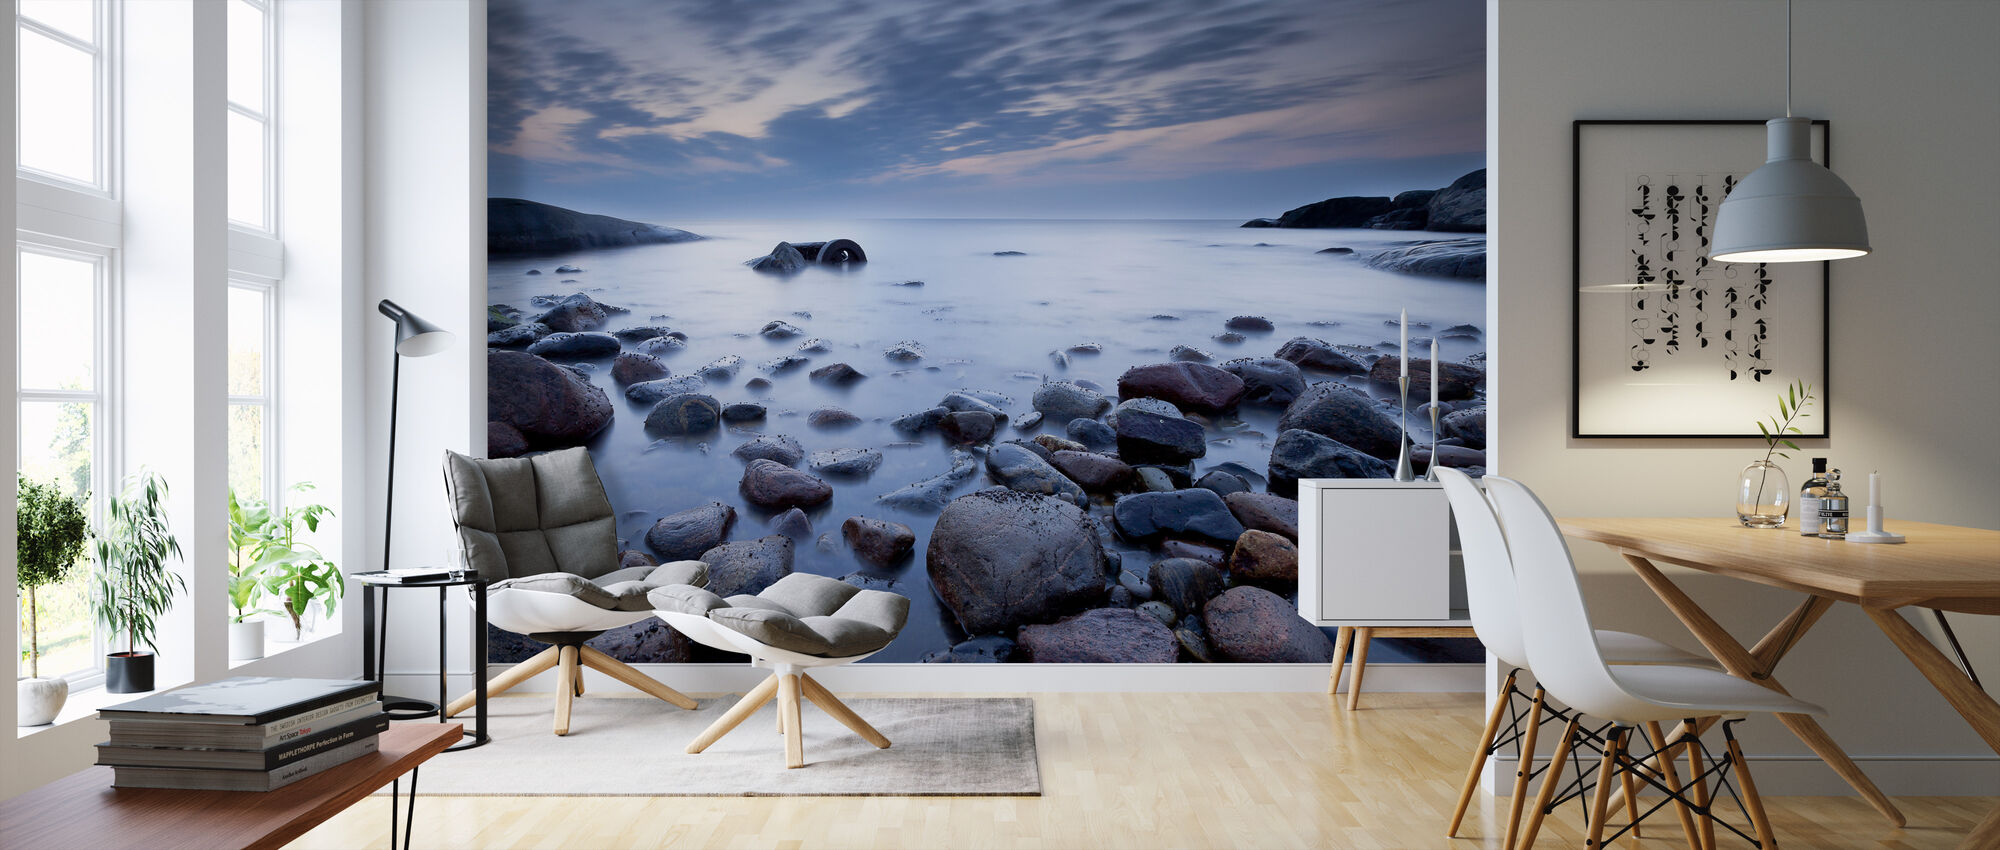 Mystic Ocean - Wallpaper - Living Room